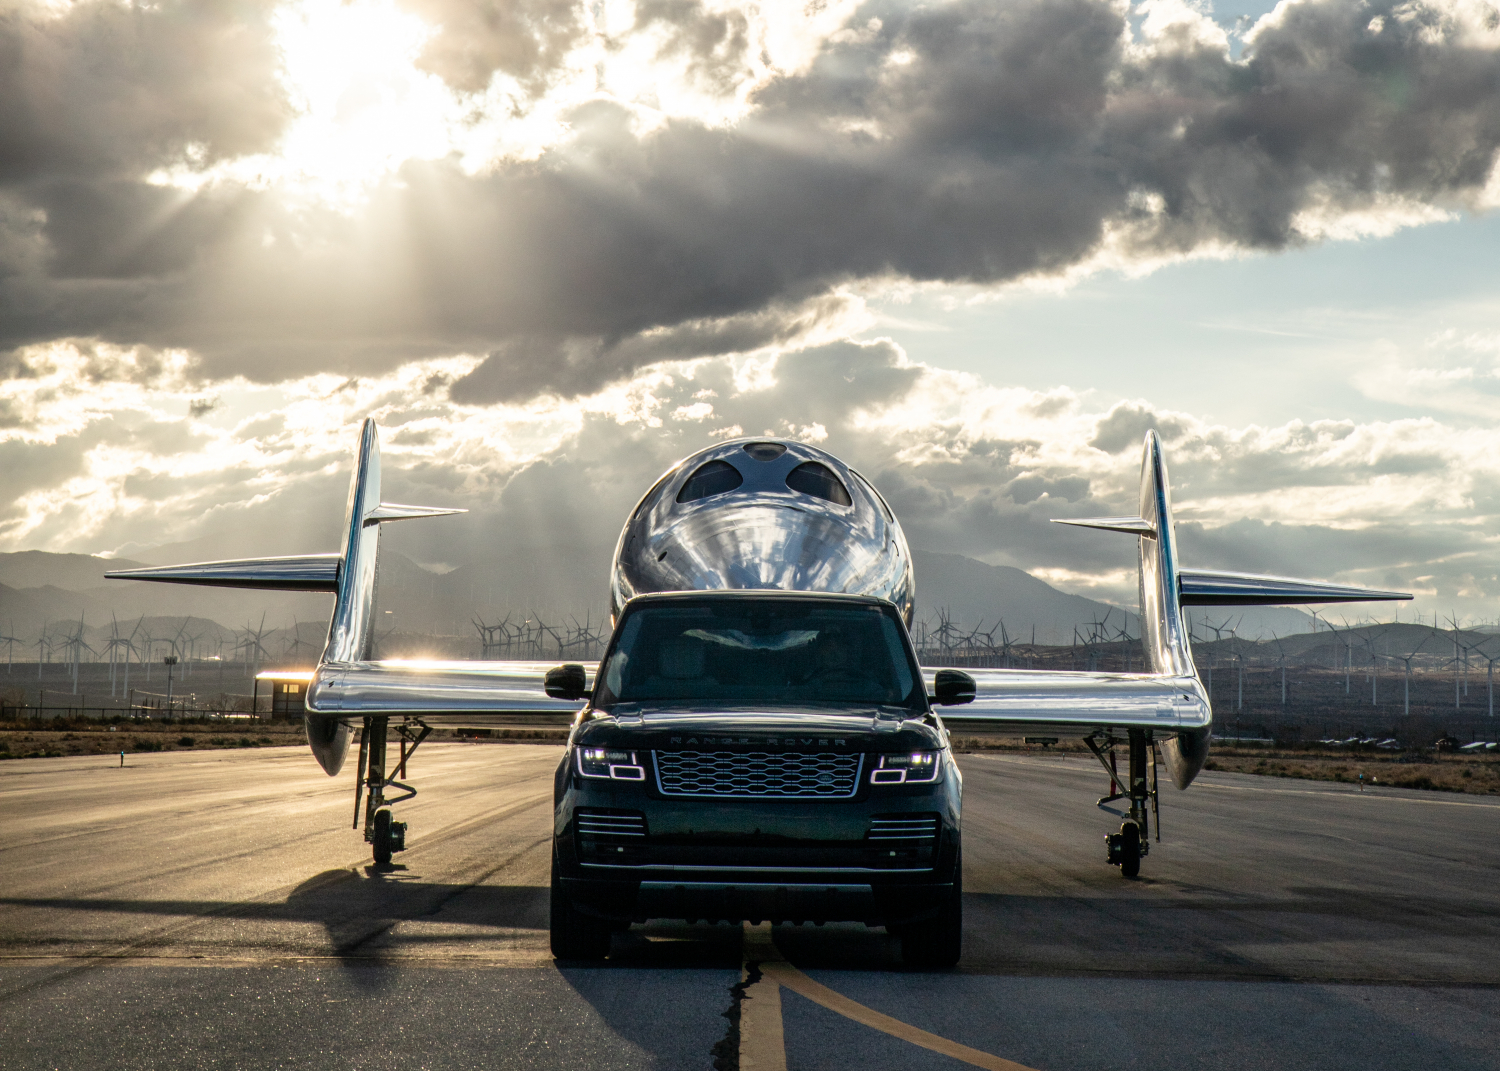 Virgin Galactic and Land Rover Announce Global Partnership Extension as New Spaceship is Revealed - Image 3